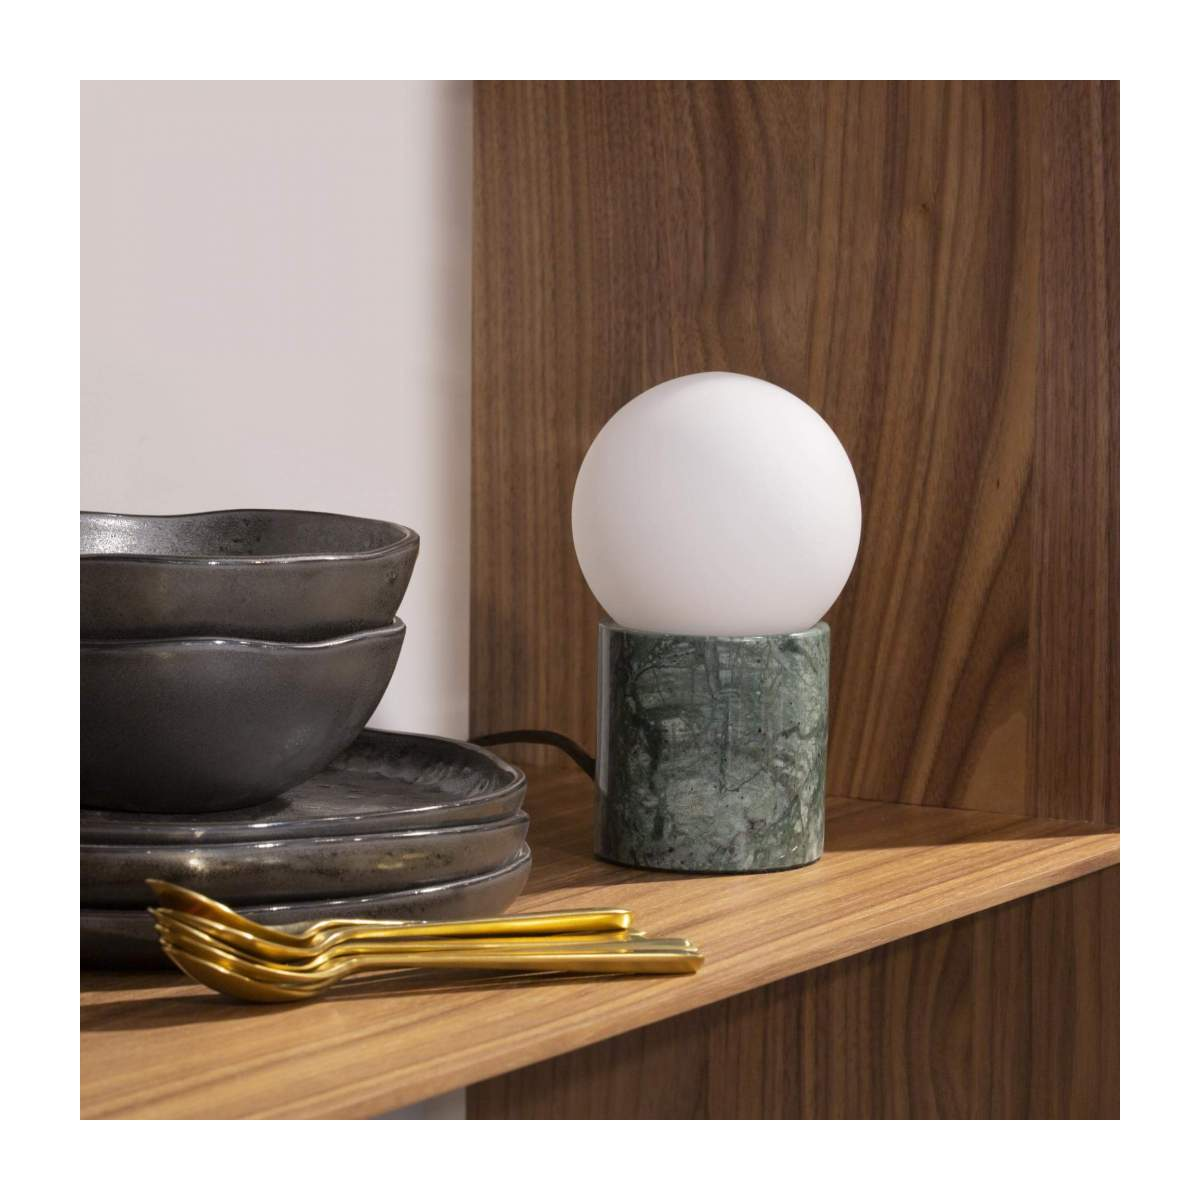 Lampe de table en marbre verre/Marble Table Lamp Green n°2